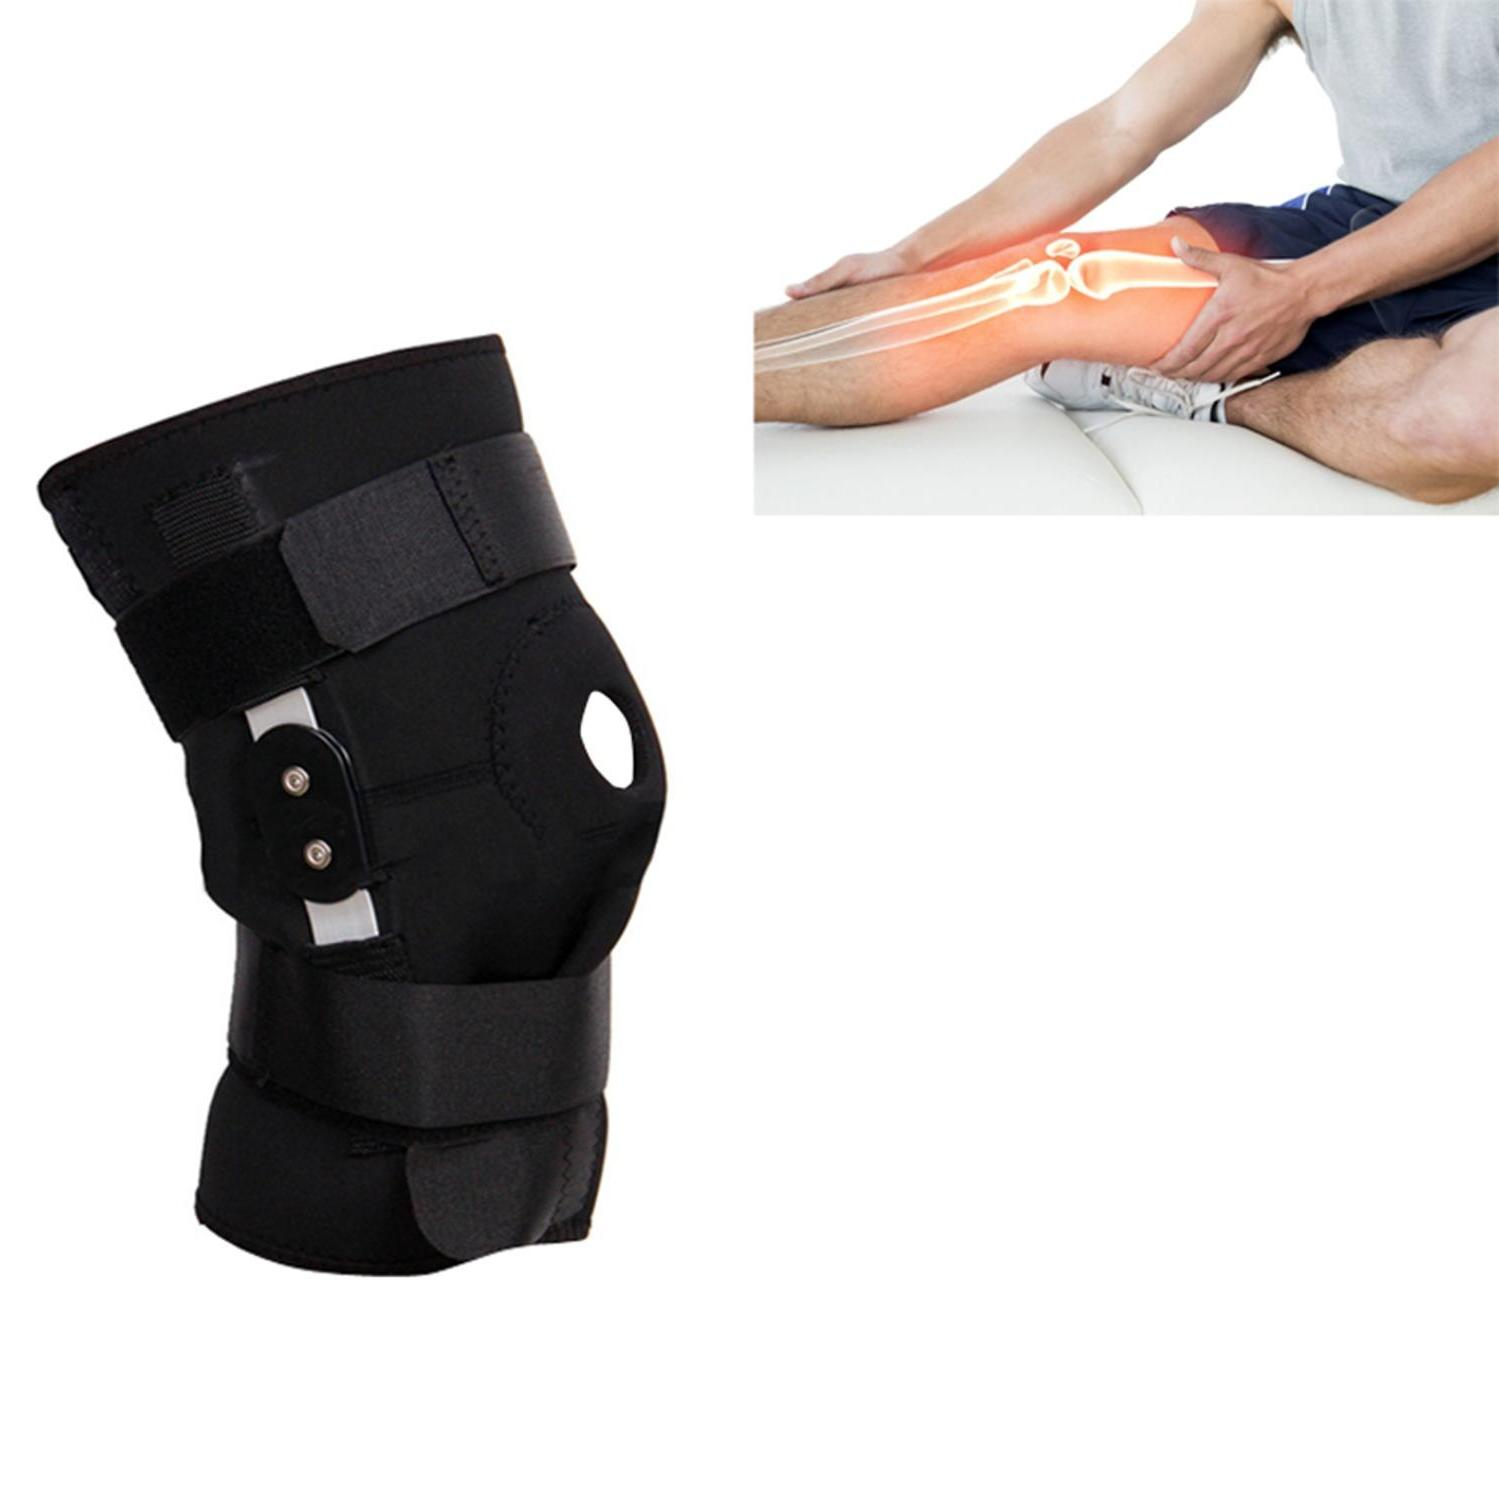 Professional Sports Adjustable Hinged <font><b>Support</b></font> Protector